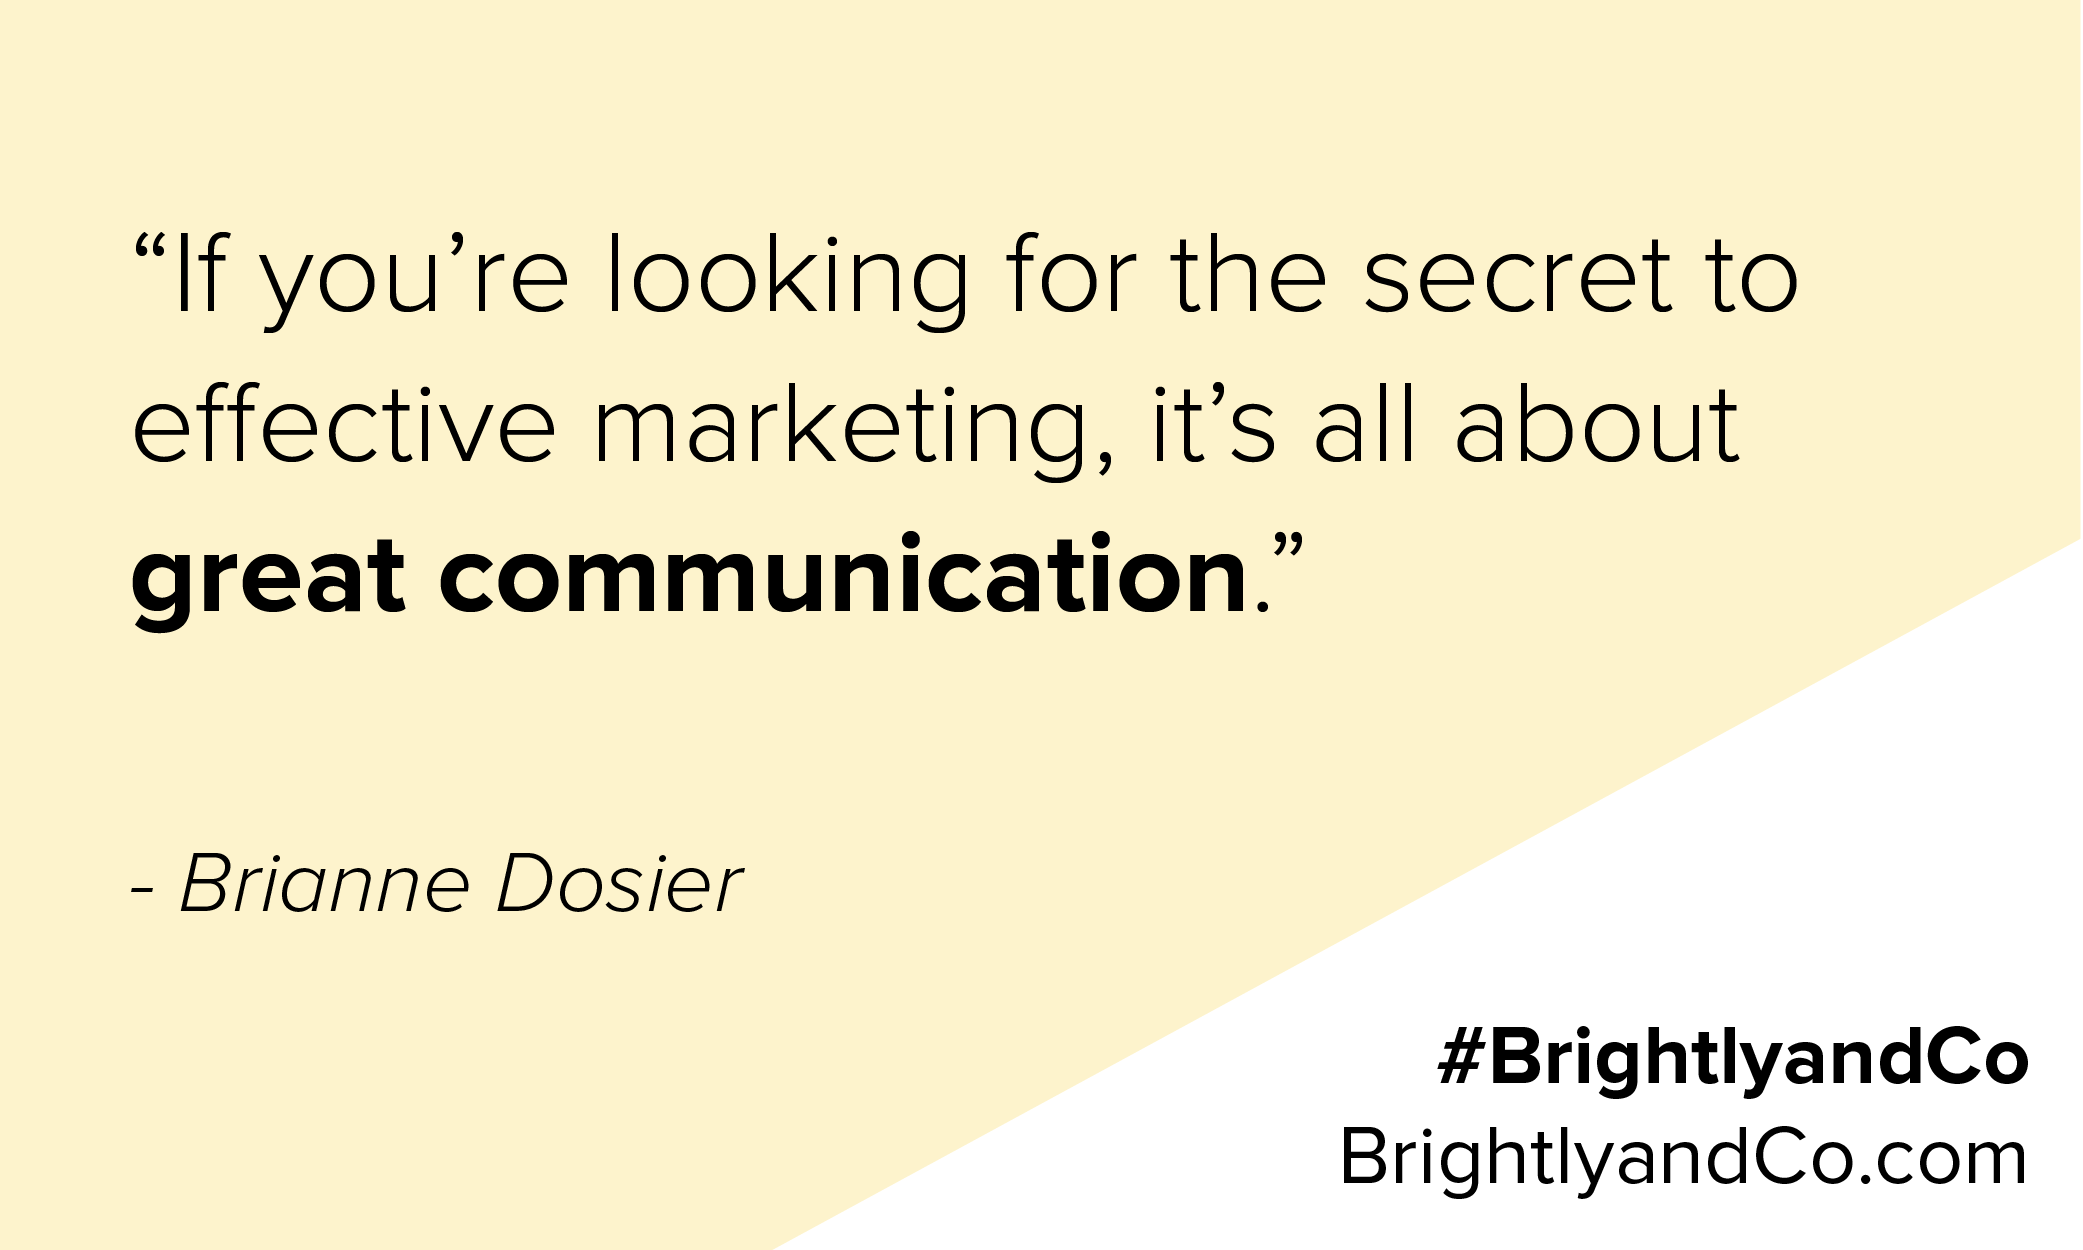 Great communication provides clarity and confidence - Brianne Dosier from Brightly & Co.